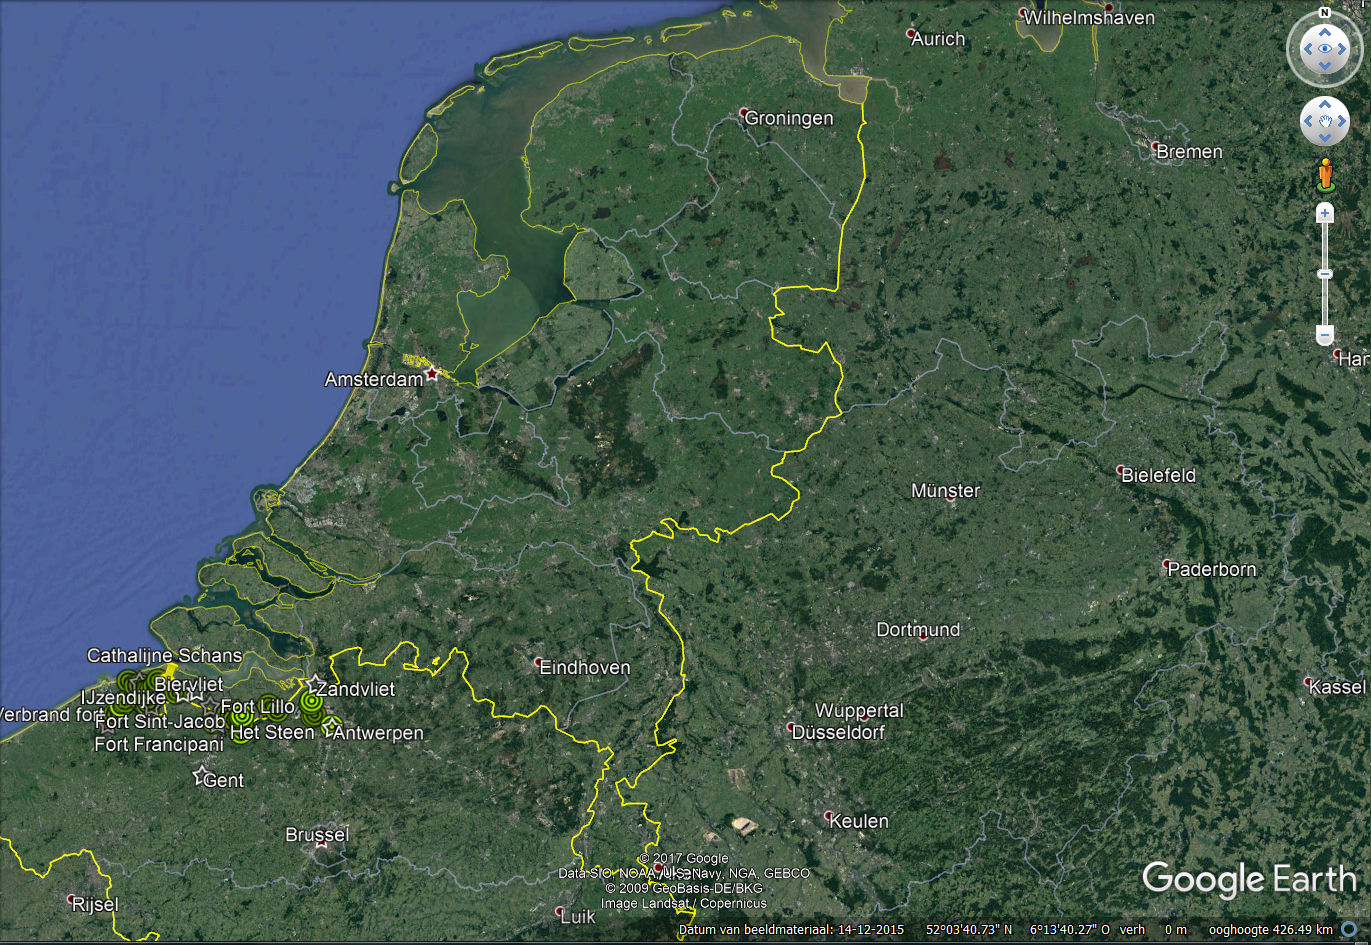 1568 Staats Spaanse Linies   1500 - 1599   Linies in Nederland 9f05a4f6f70b